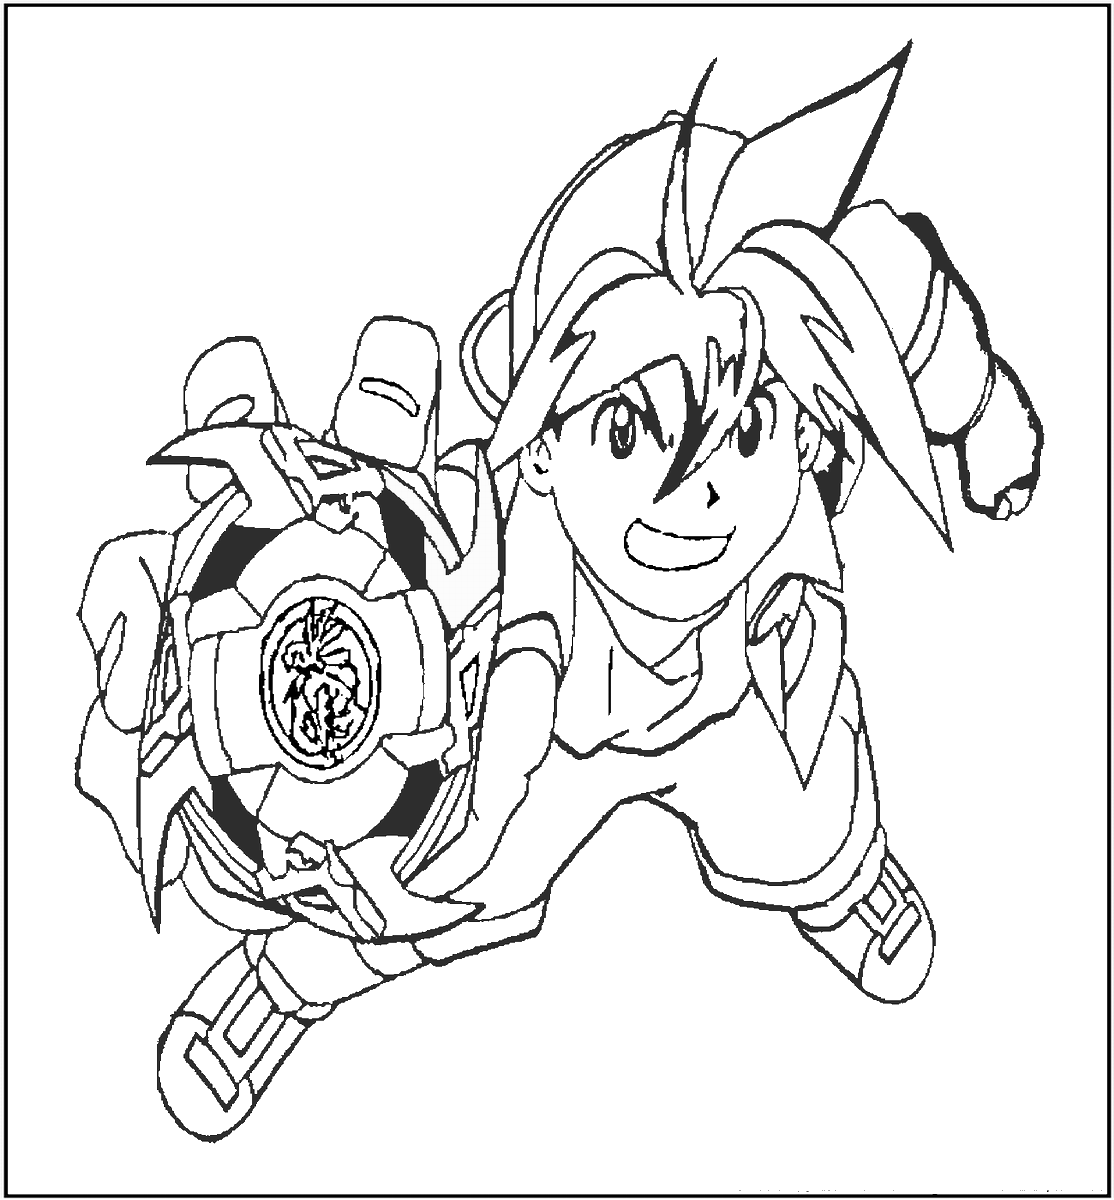 beyblade characters coloring pages kai from beyblade burst coloring pages free printable characters beyblade coloring pages